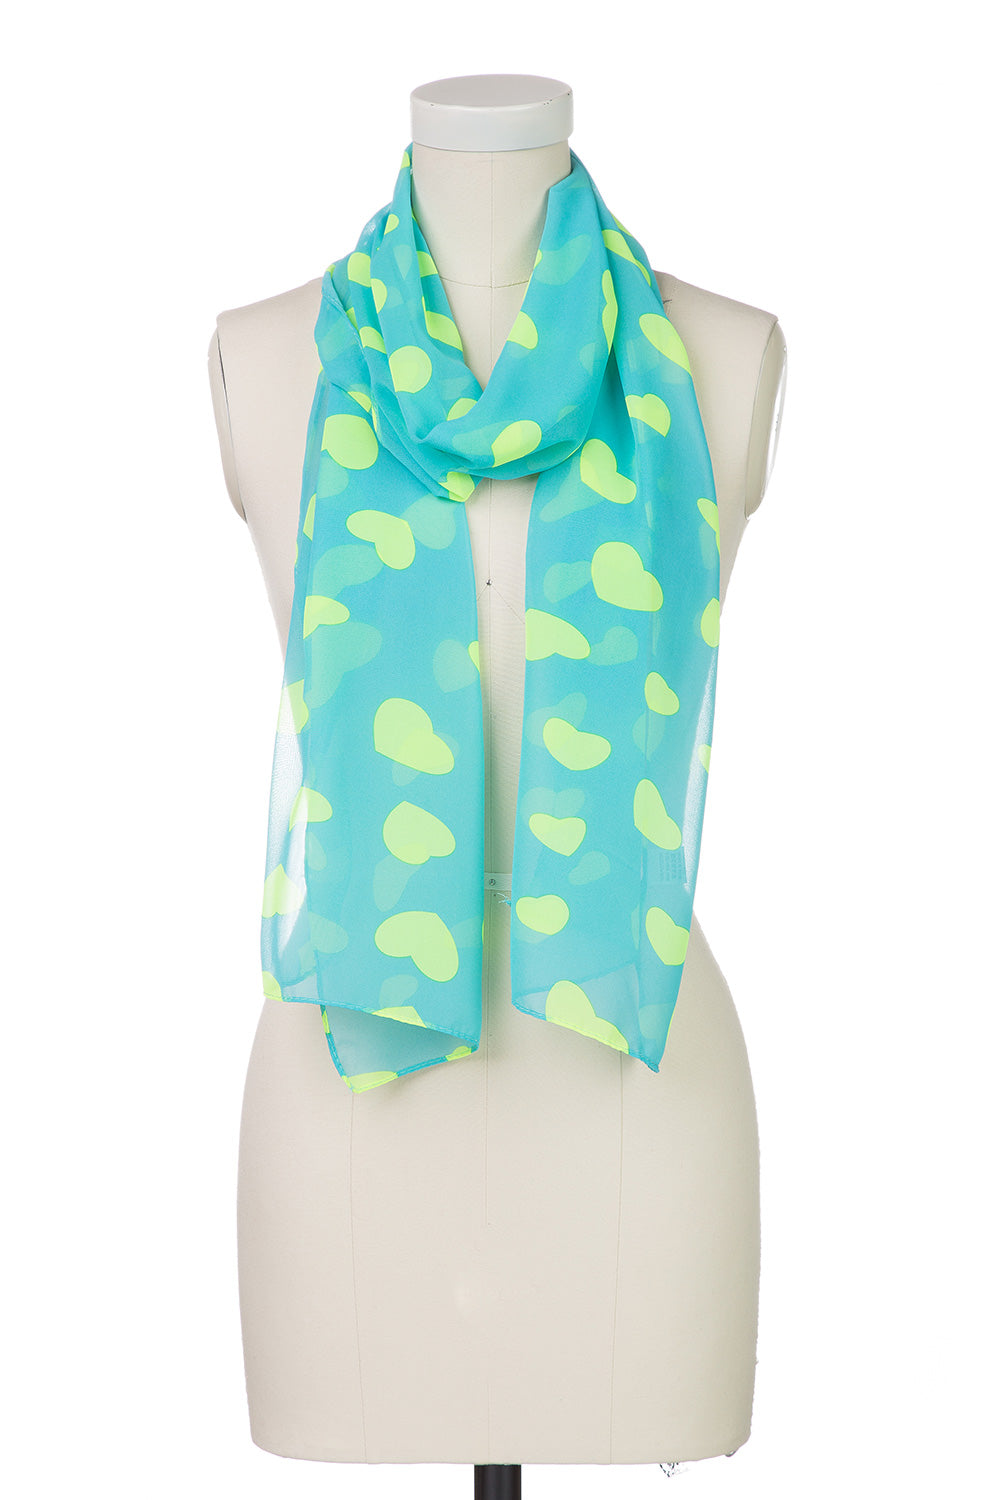 Type 1 I Heart Blue Scarf